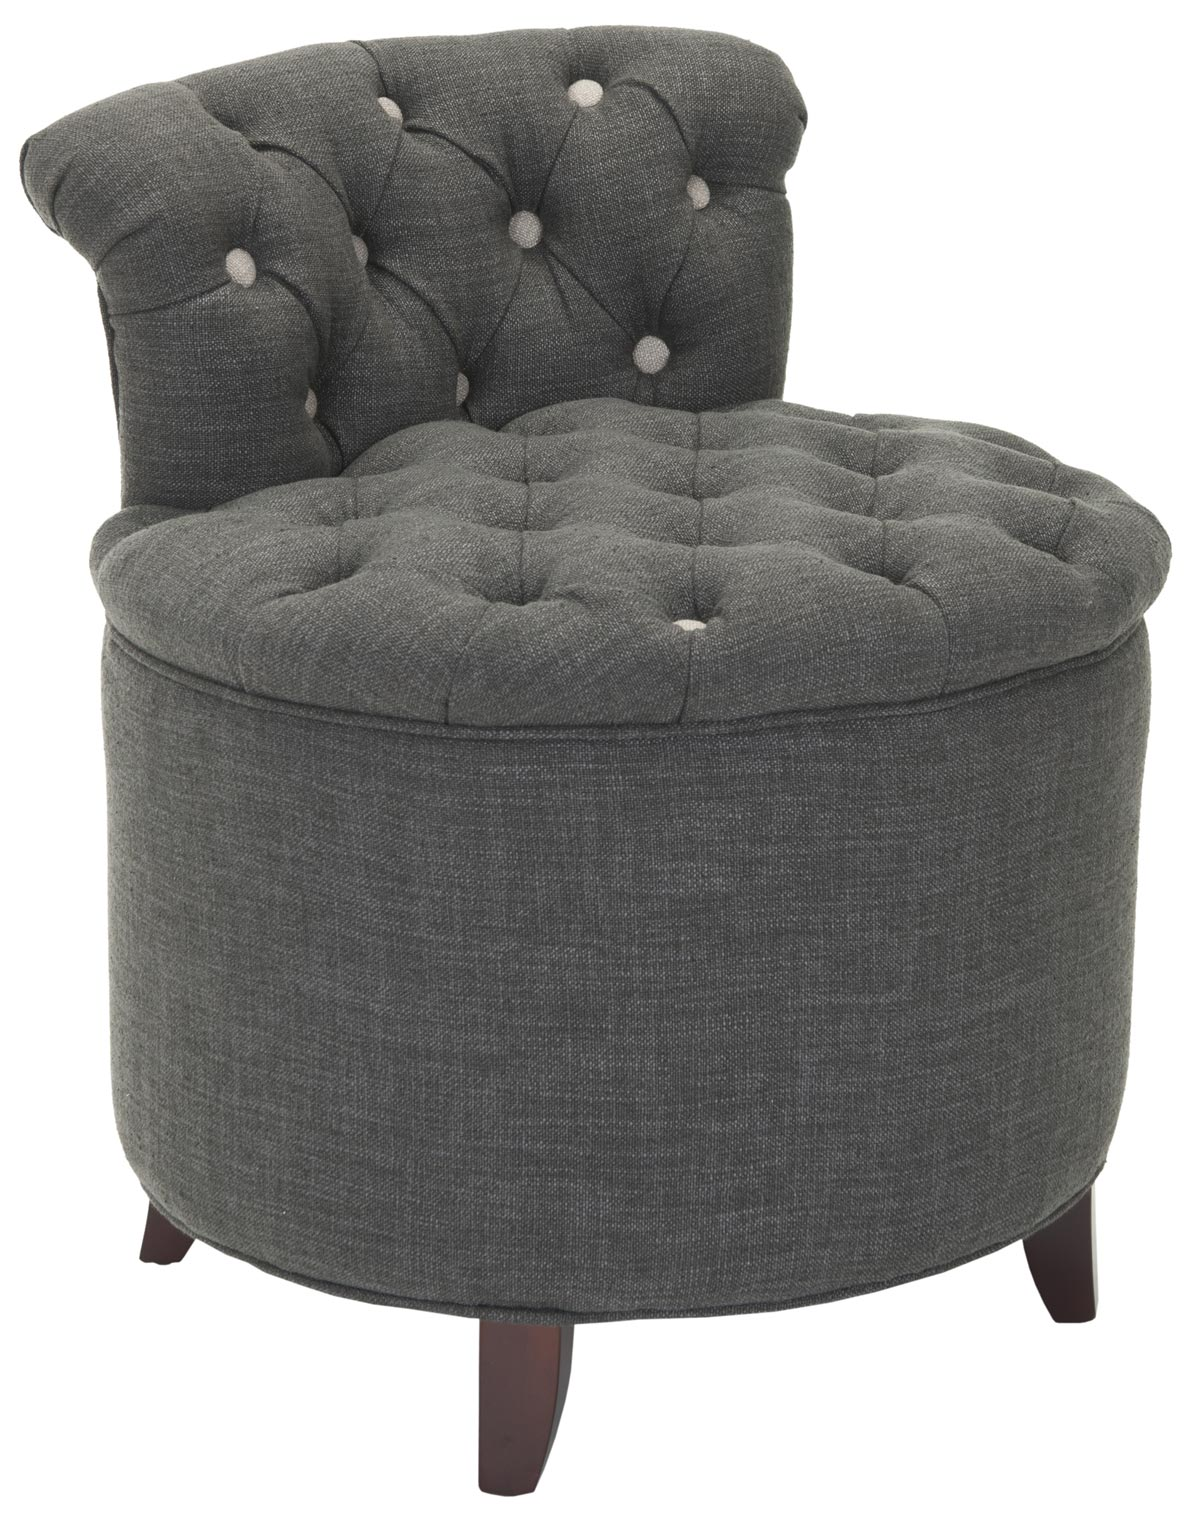 Charmant Safavieh   MCR4518A REBECCA TUFTED VANITY CHAIR